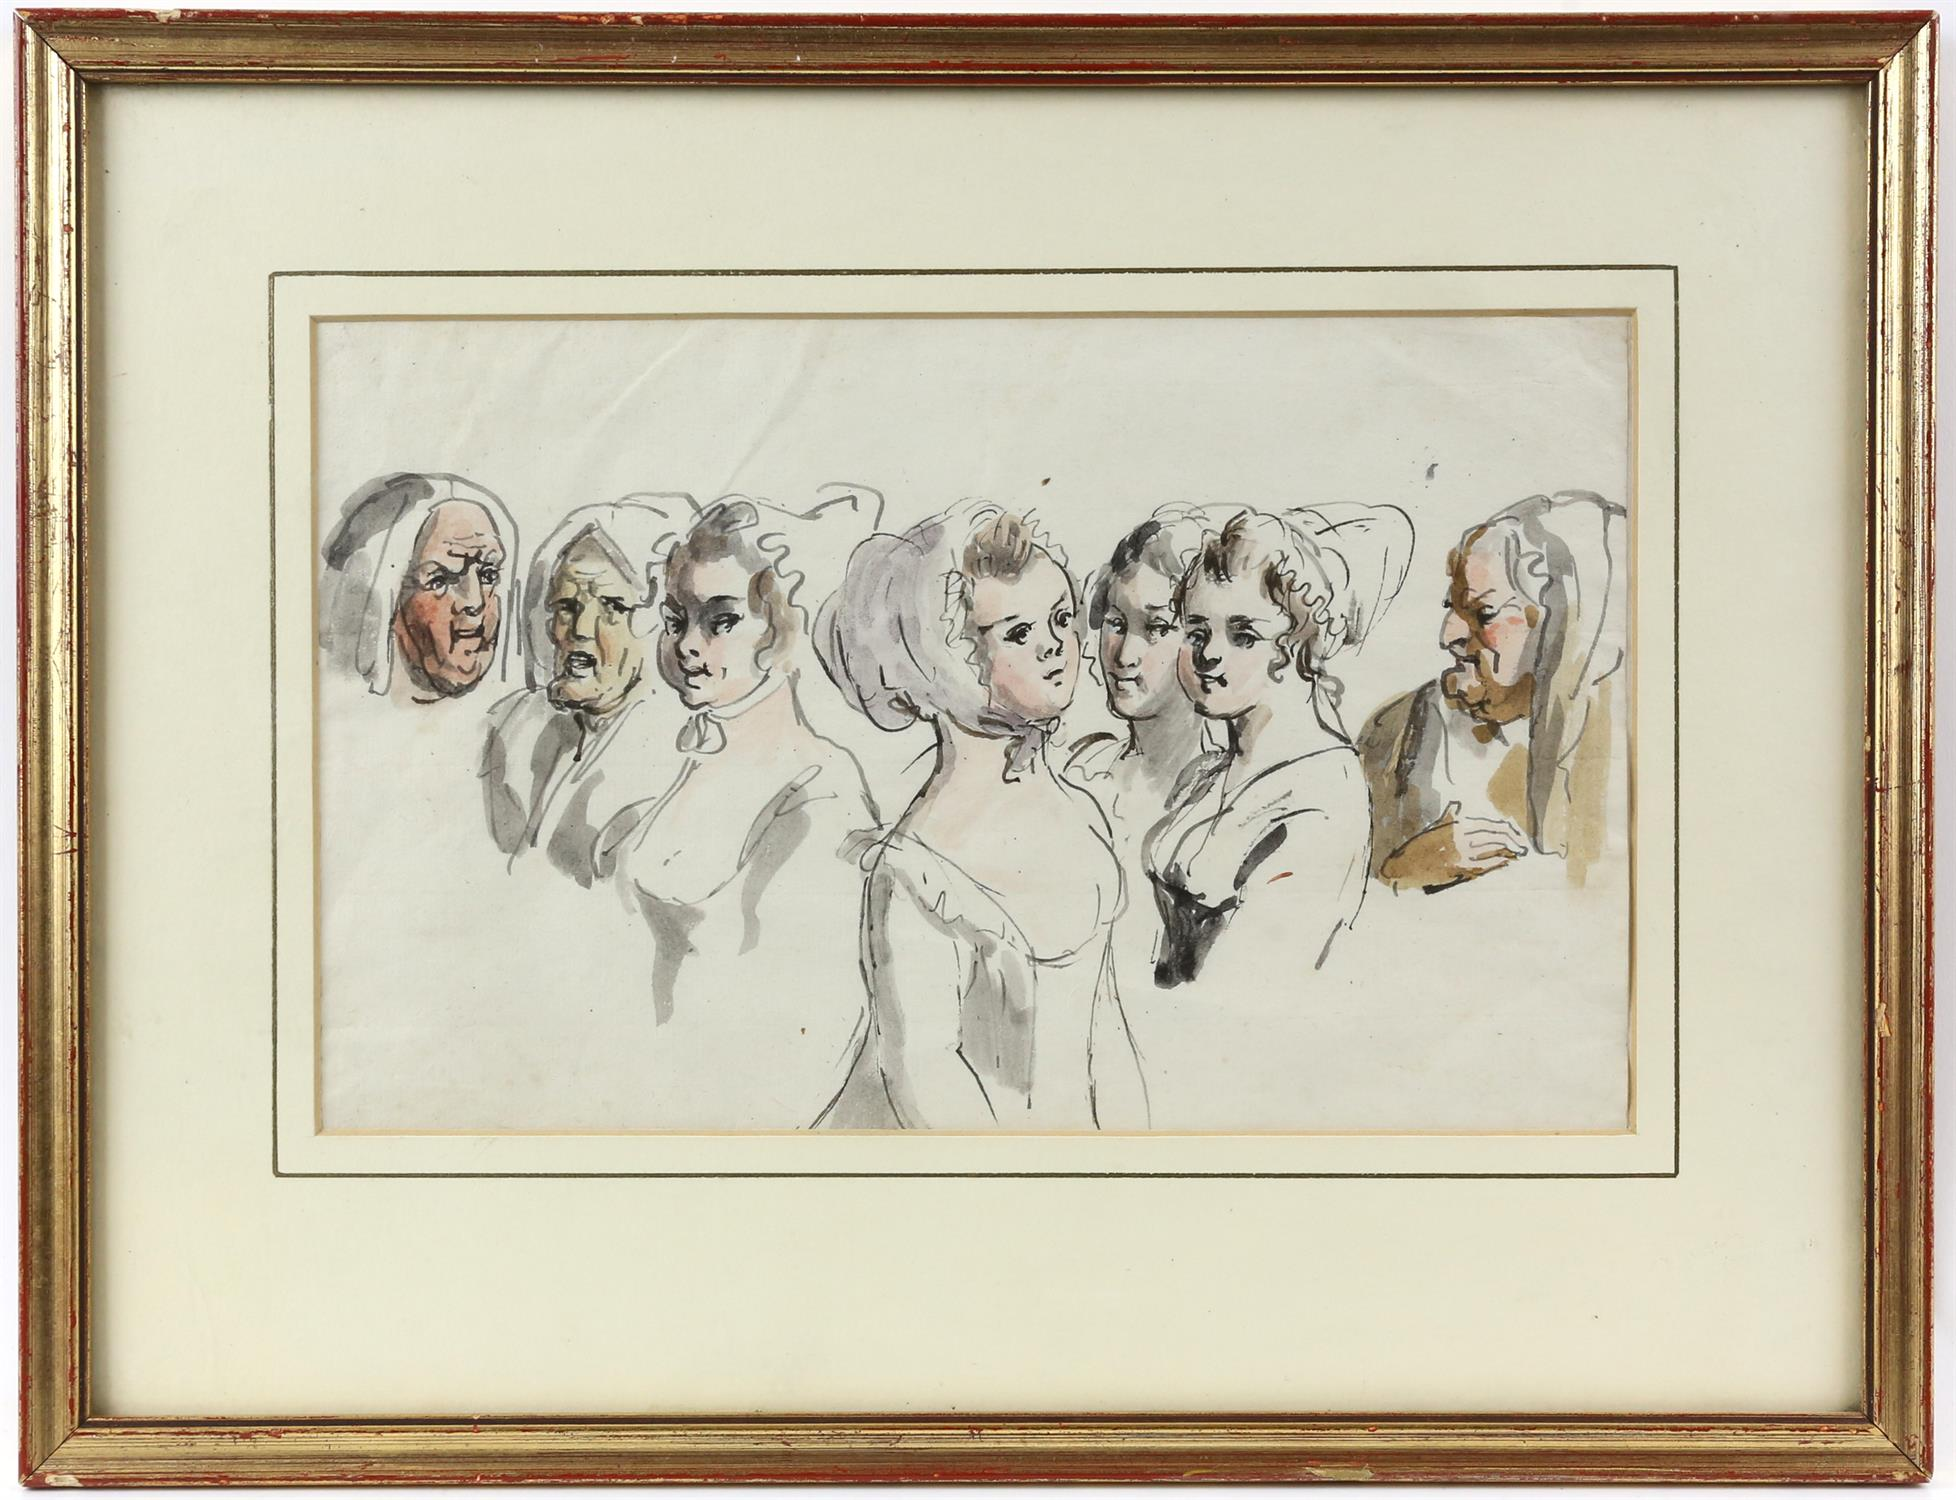 19th century Continental School, seven head studies of ladies, ink and watercolour, 16.5cm x 26.5cm, - Image 2 of 3